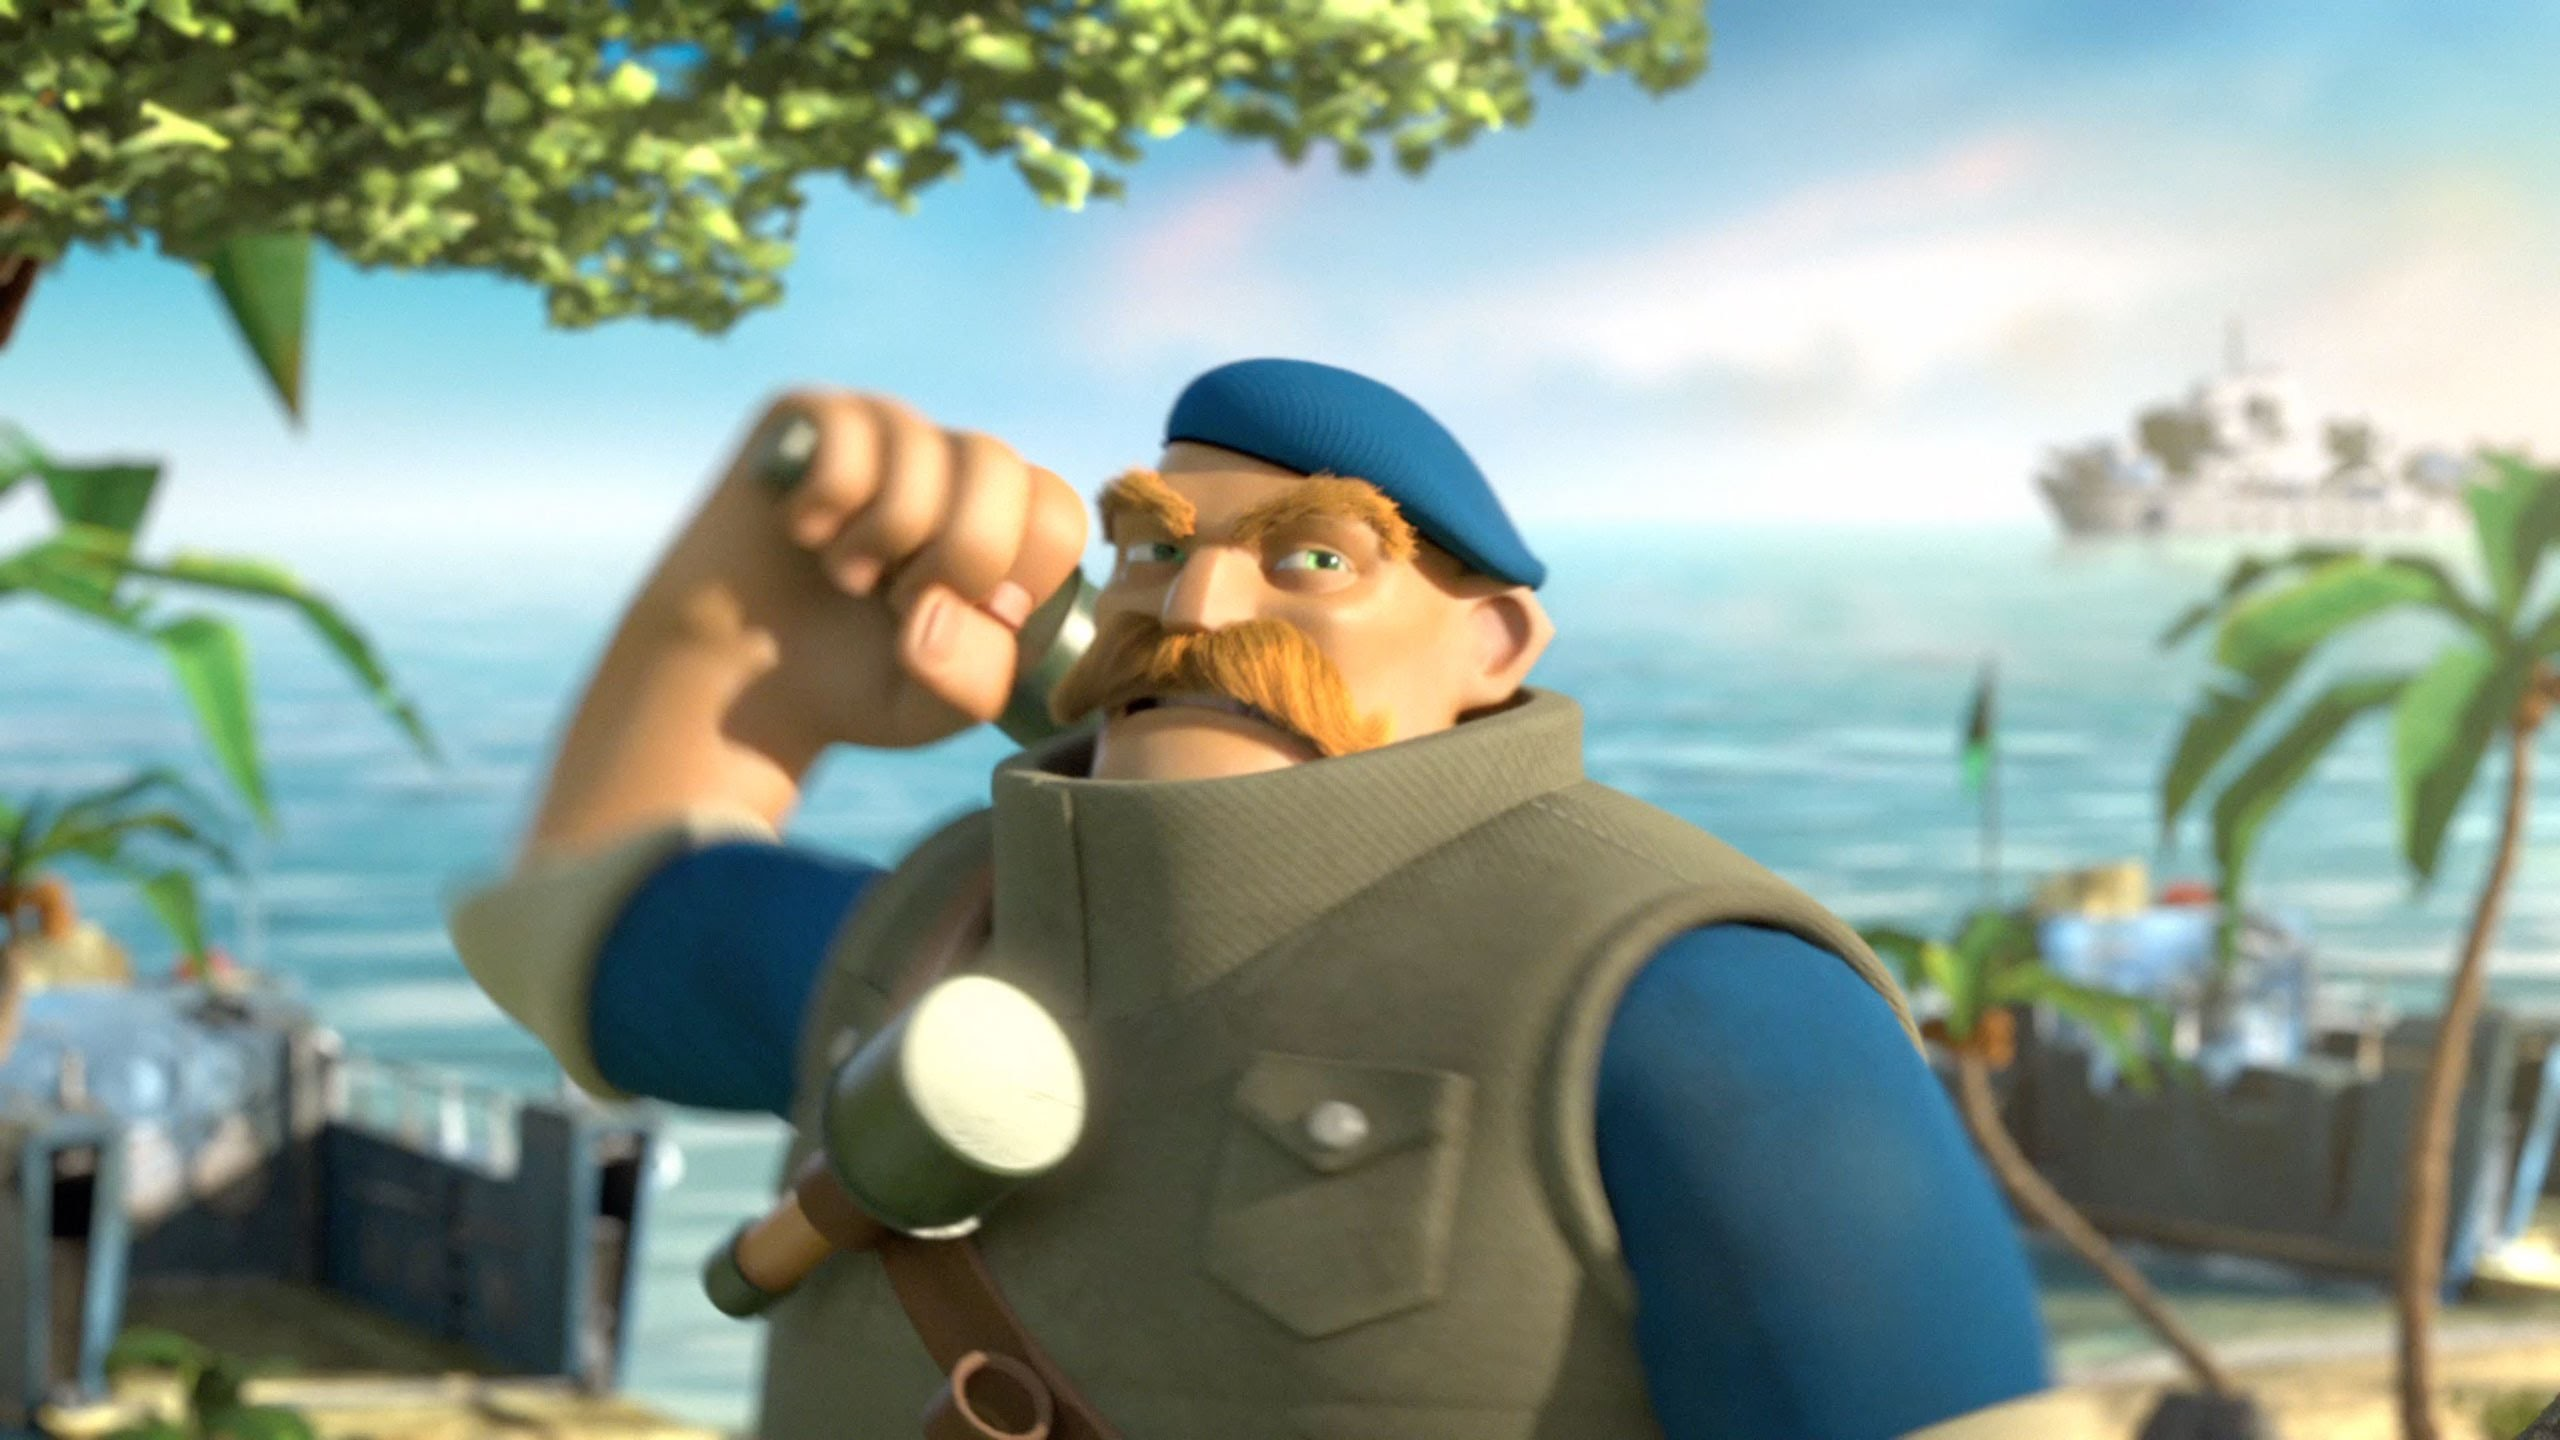 boom beach wallpapers ·①